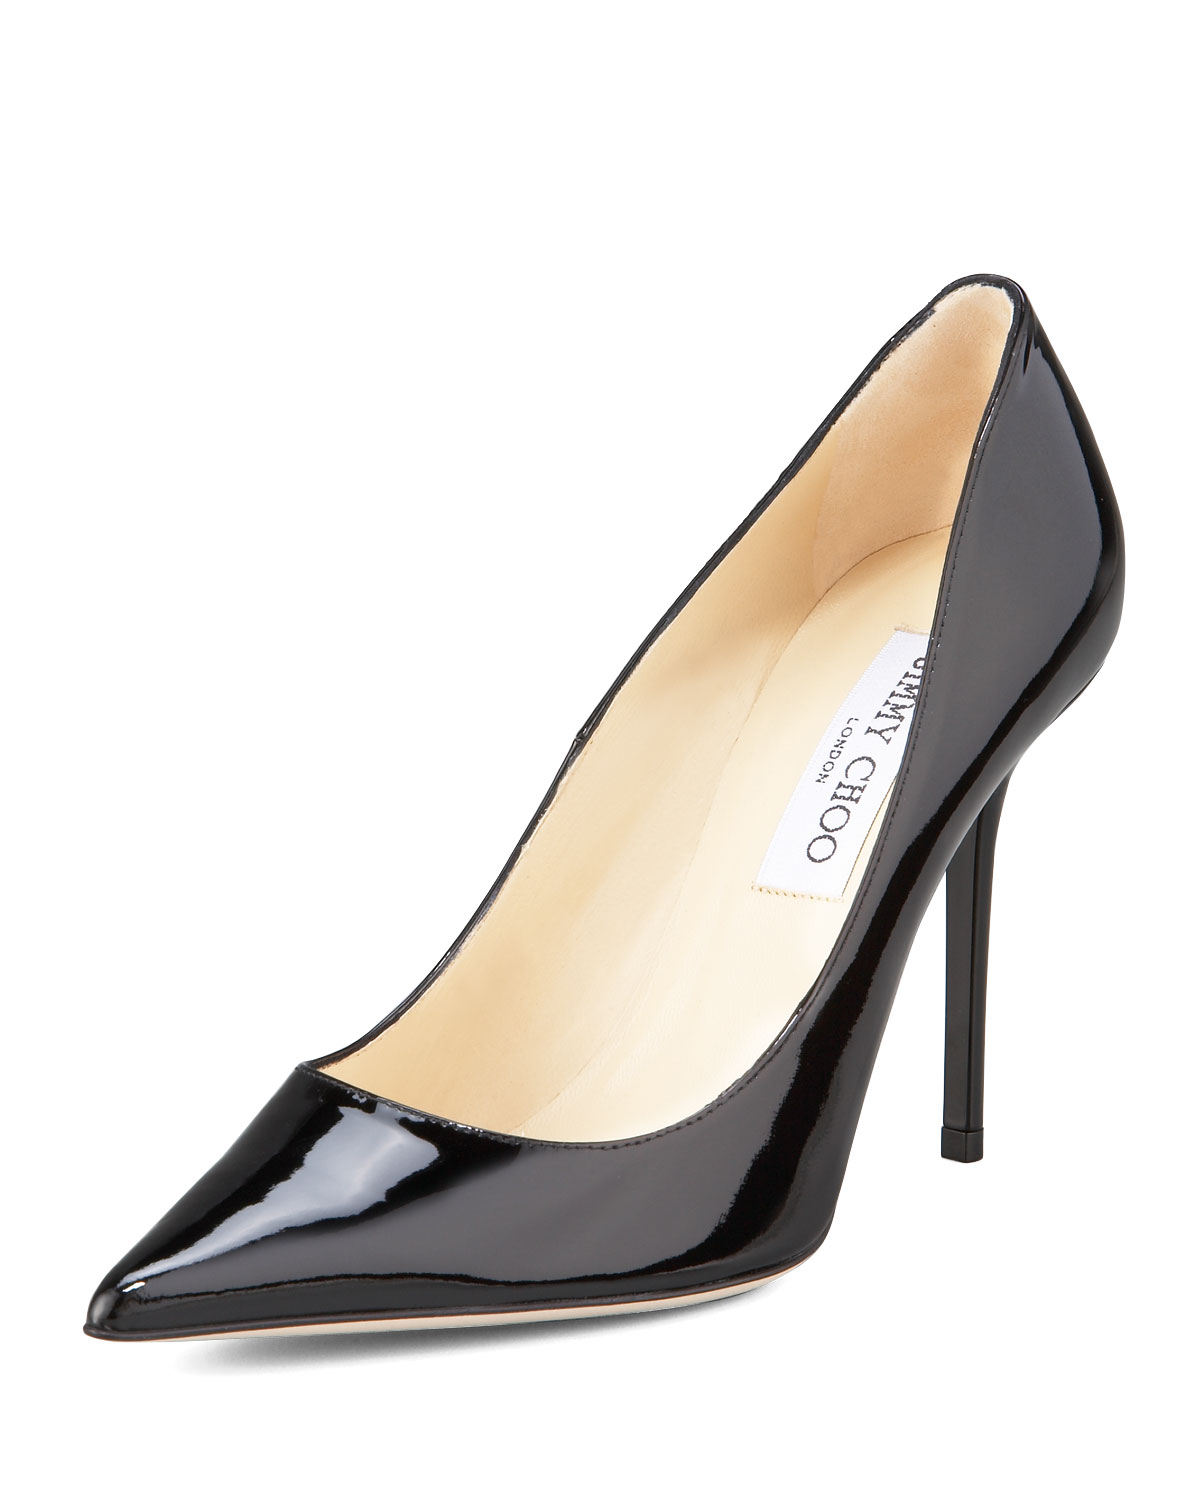 jimmy choo abel point toe patent pump black neiman marcus rh neimanmarcus com